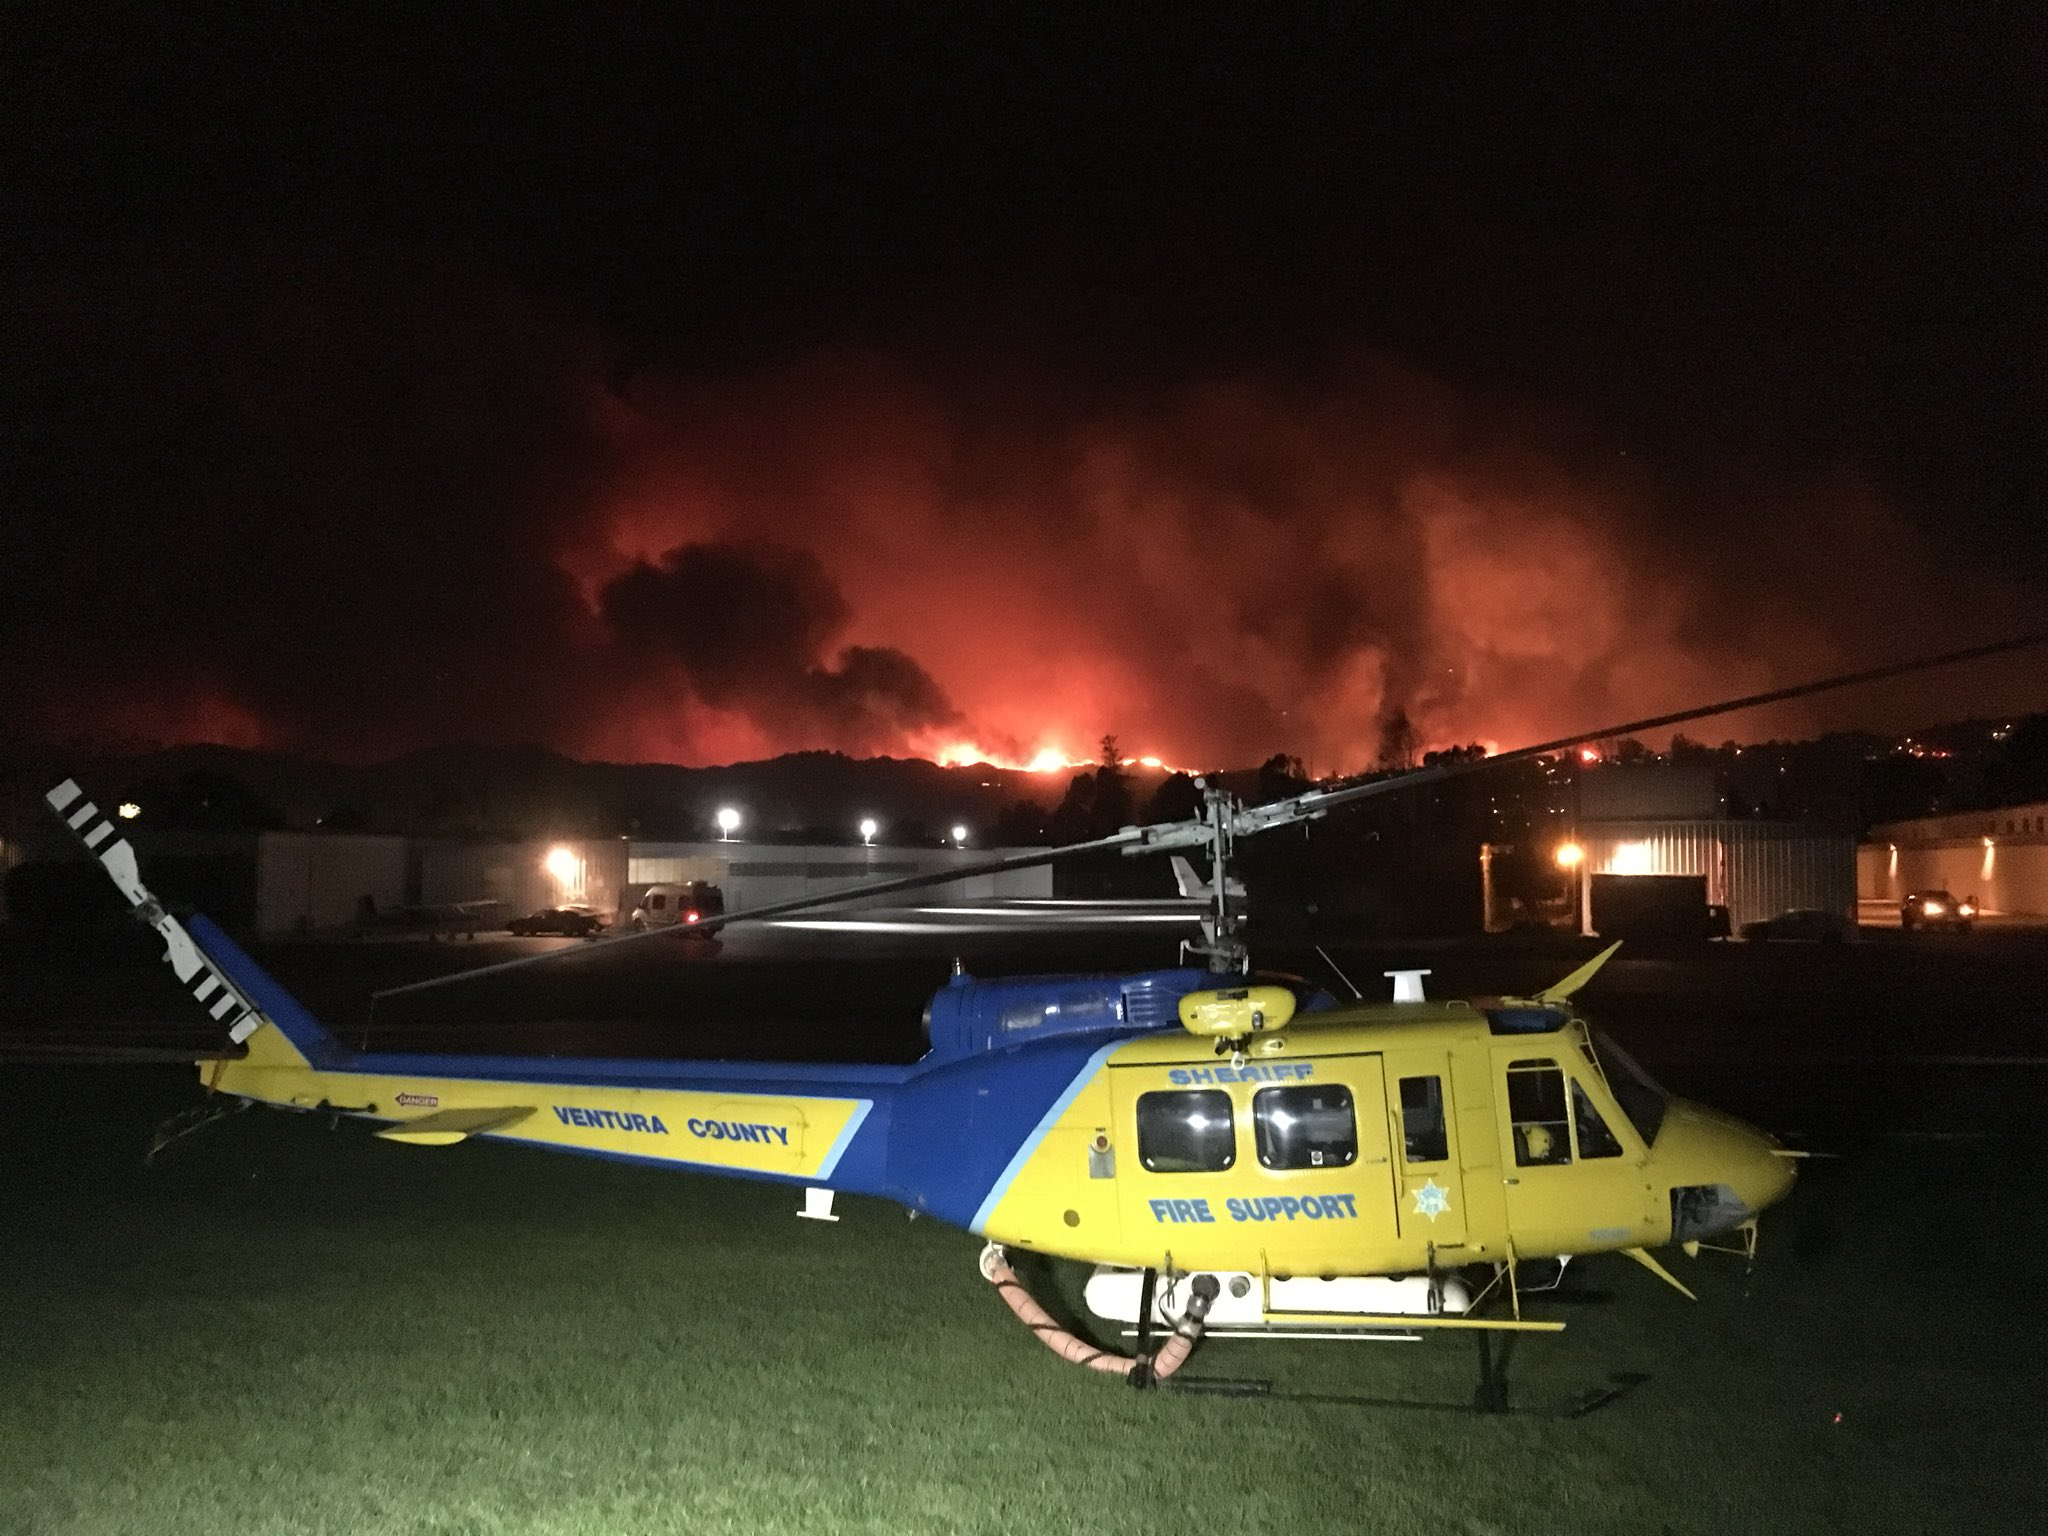 "<div class=""meta image-caption""><div class=""origin-logo origin-image kfsn""><span>kfsn</span></div><span class=""caption-text"">Helicopter forced to land  at Santa Paula Airport due to 50 +MPH winds. (VenturaCoAirUnit)</span></div>"